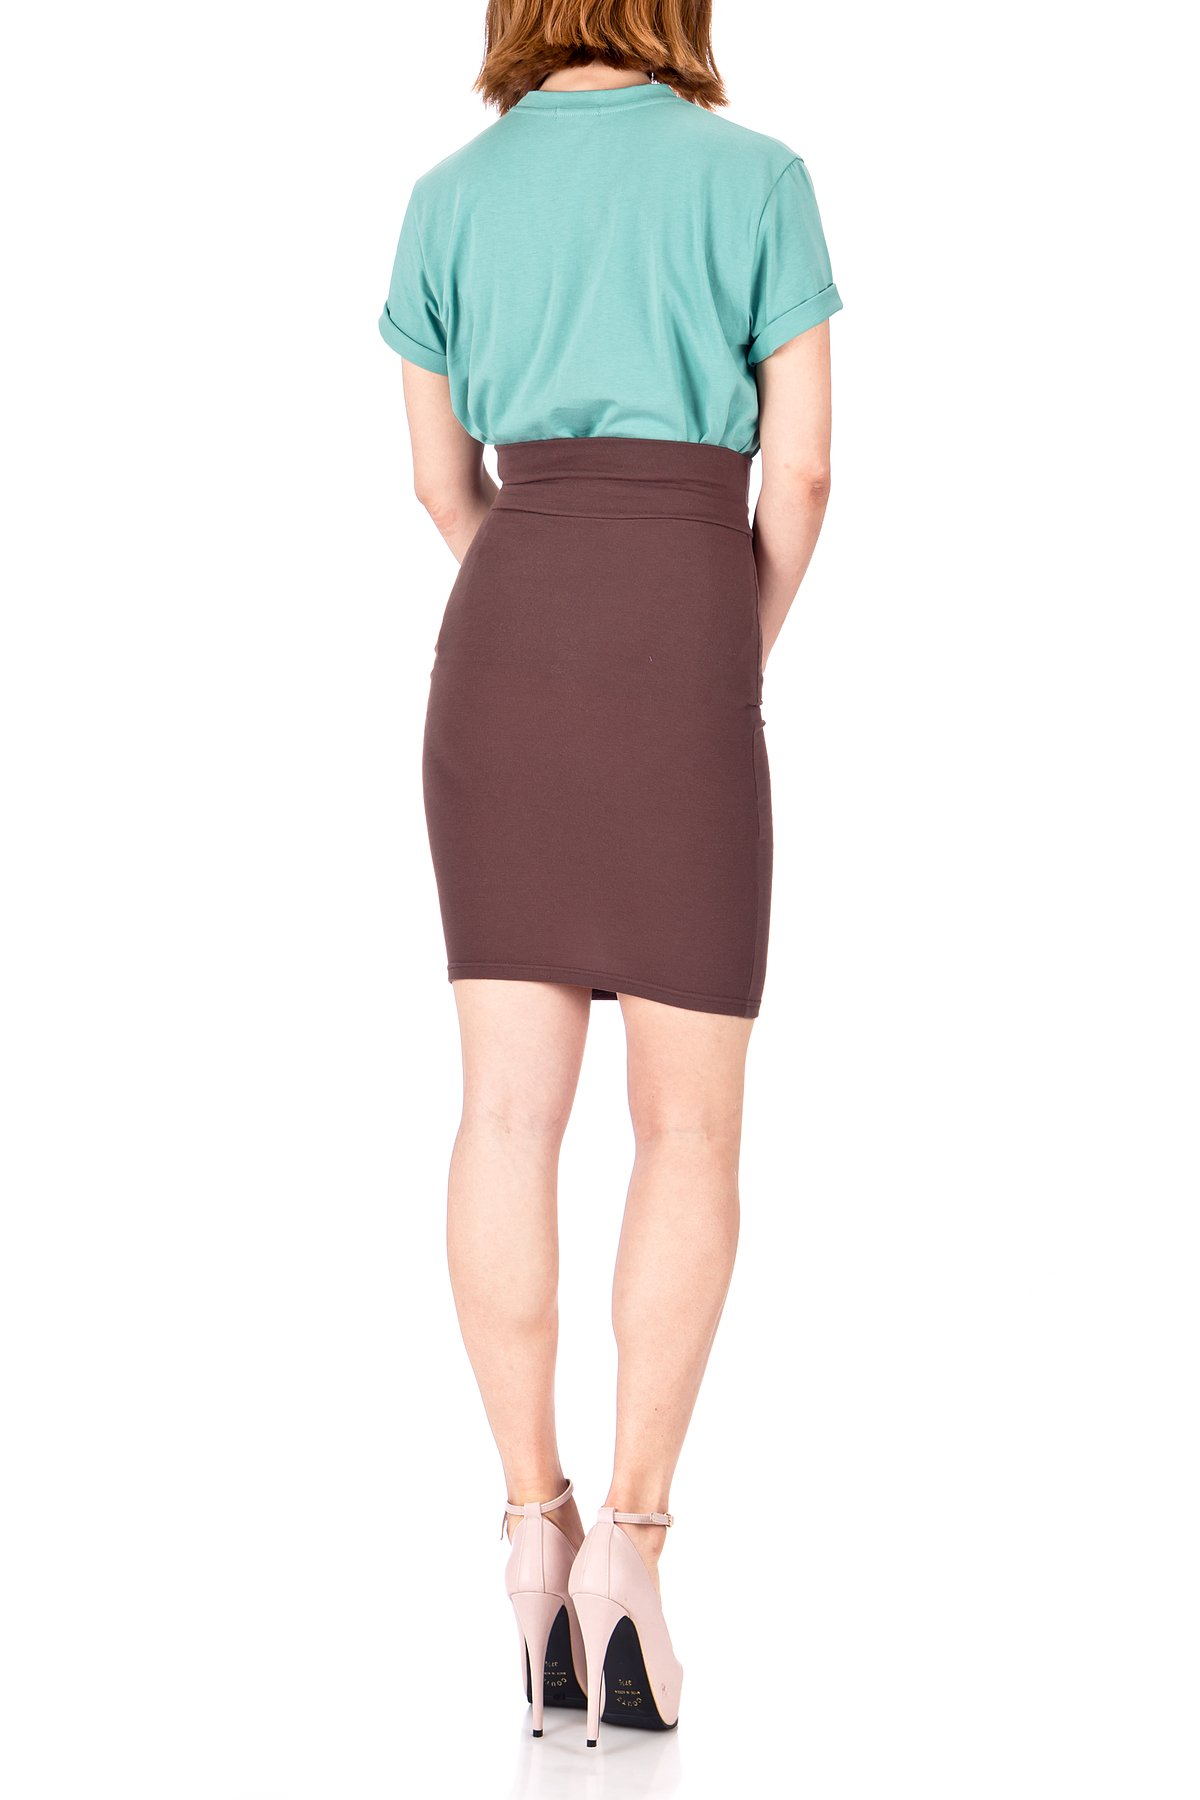 Every Occasion Stretch Pull on Wide High Waist Bodycon Pencil Knee Length Midi Skirt Brown 05